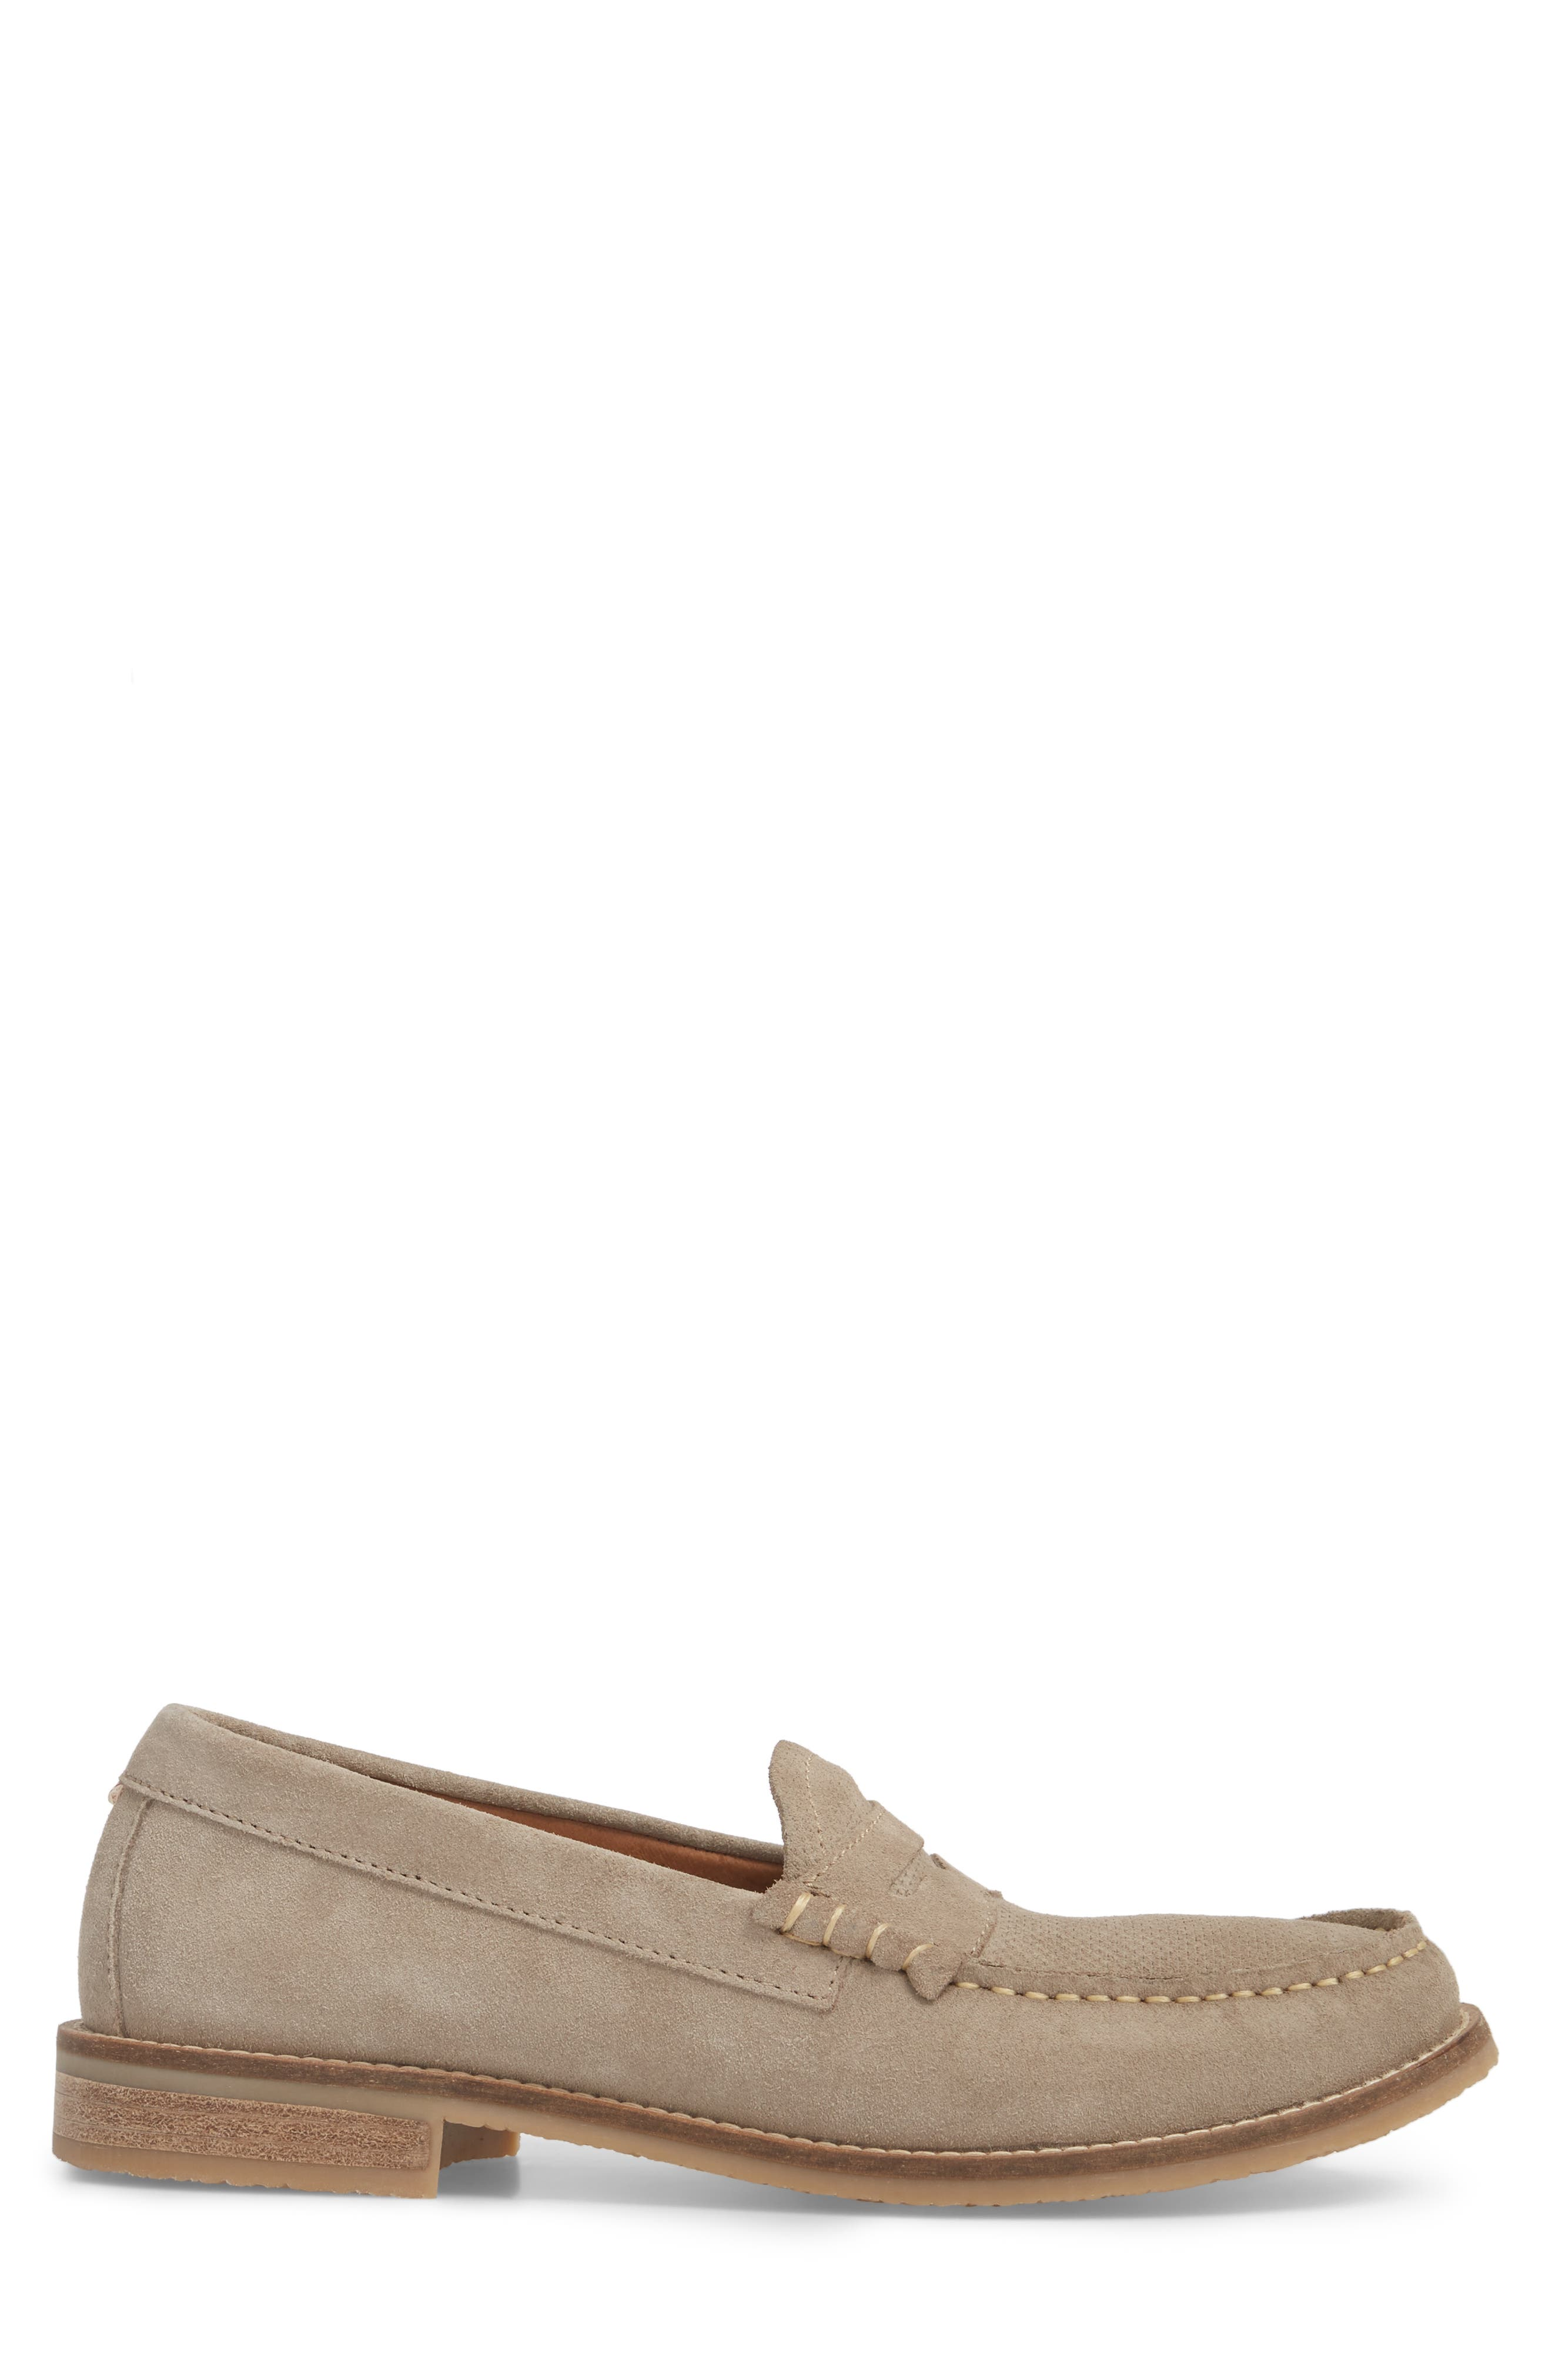 Wayne Textured Penny Loafer,                             Alternate thumbnail 3, color,                             EARTH BEIGE